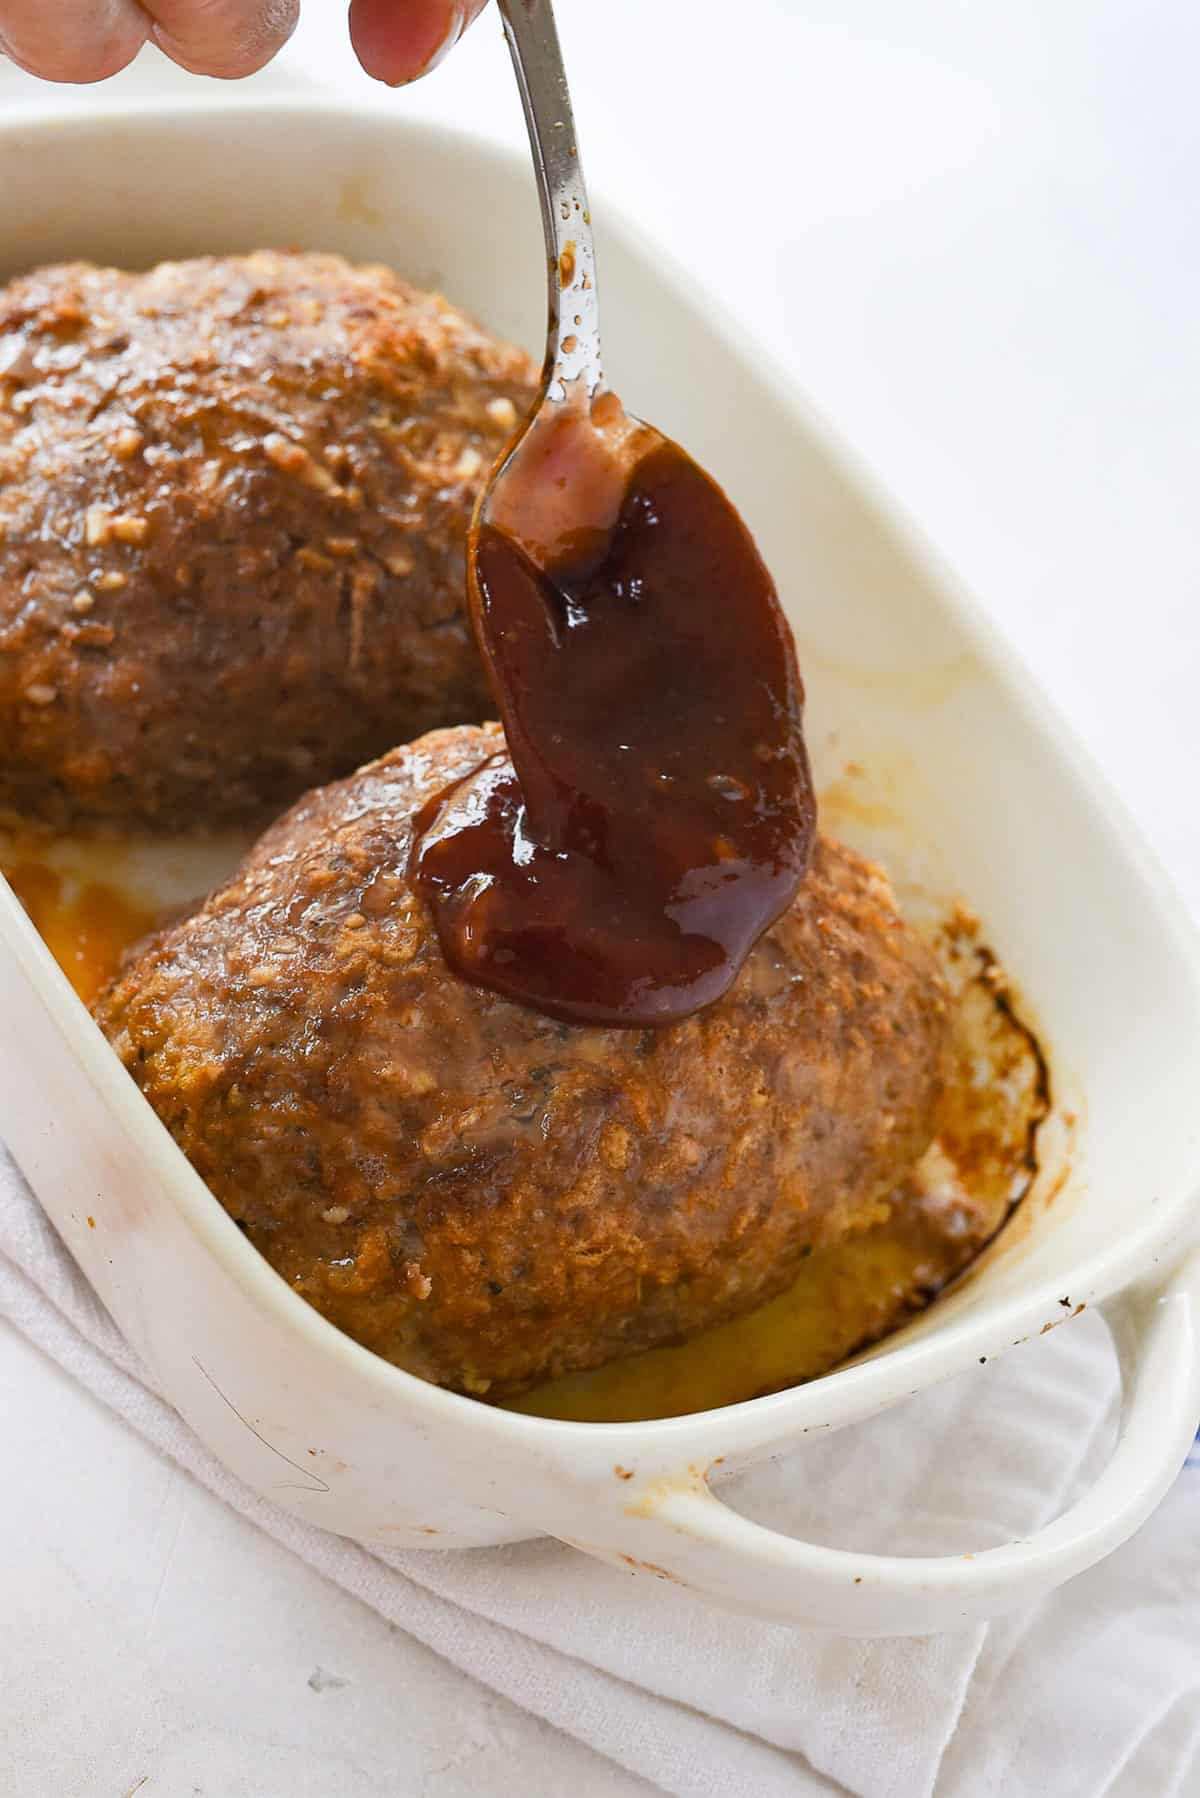 glazing the meatloaf with ketchup mixture